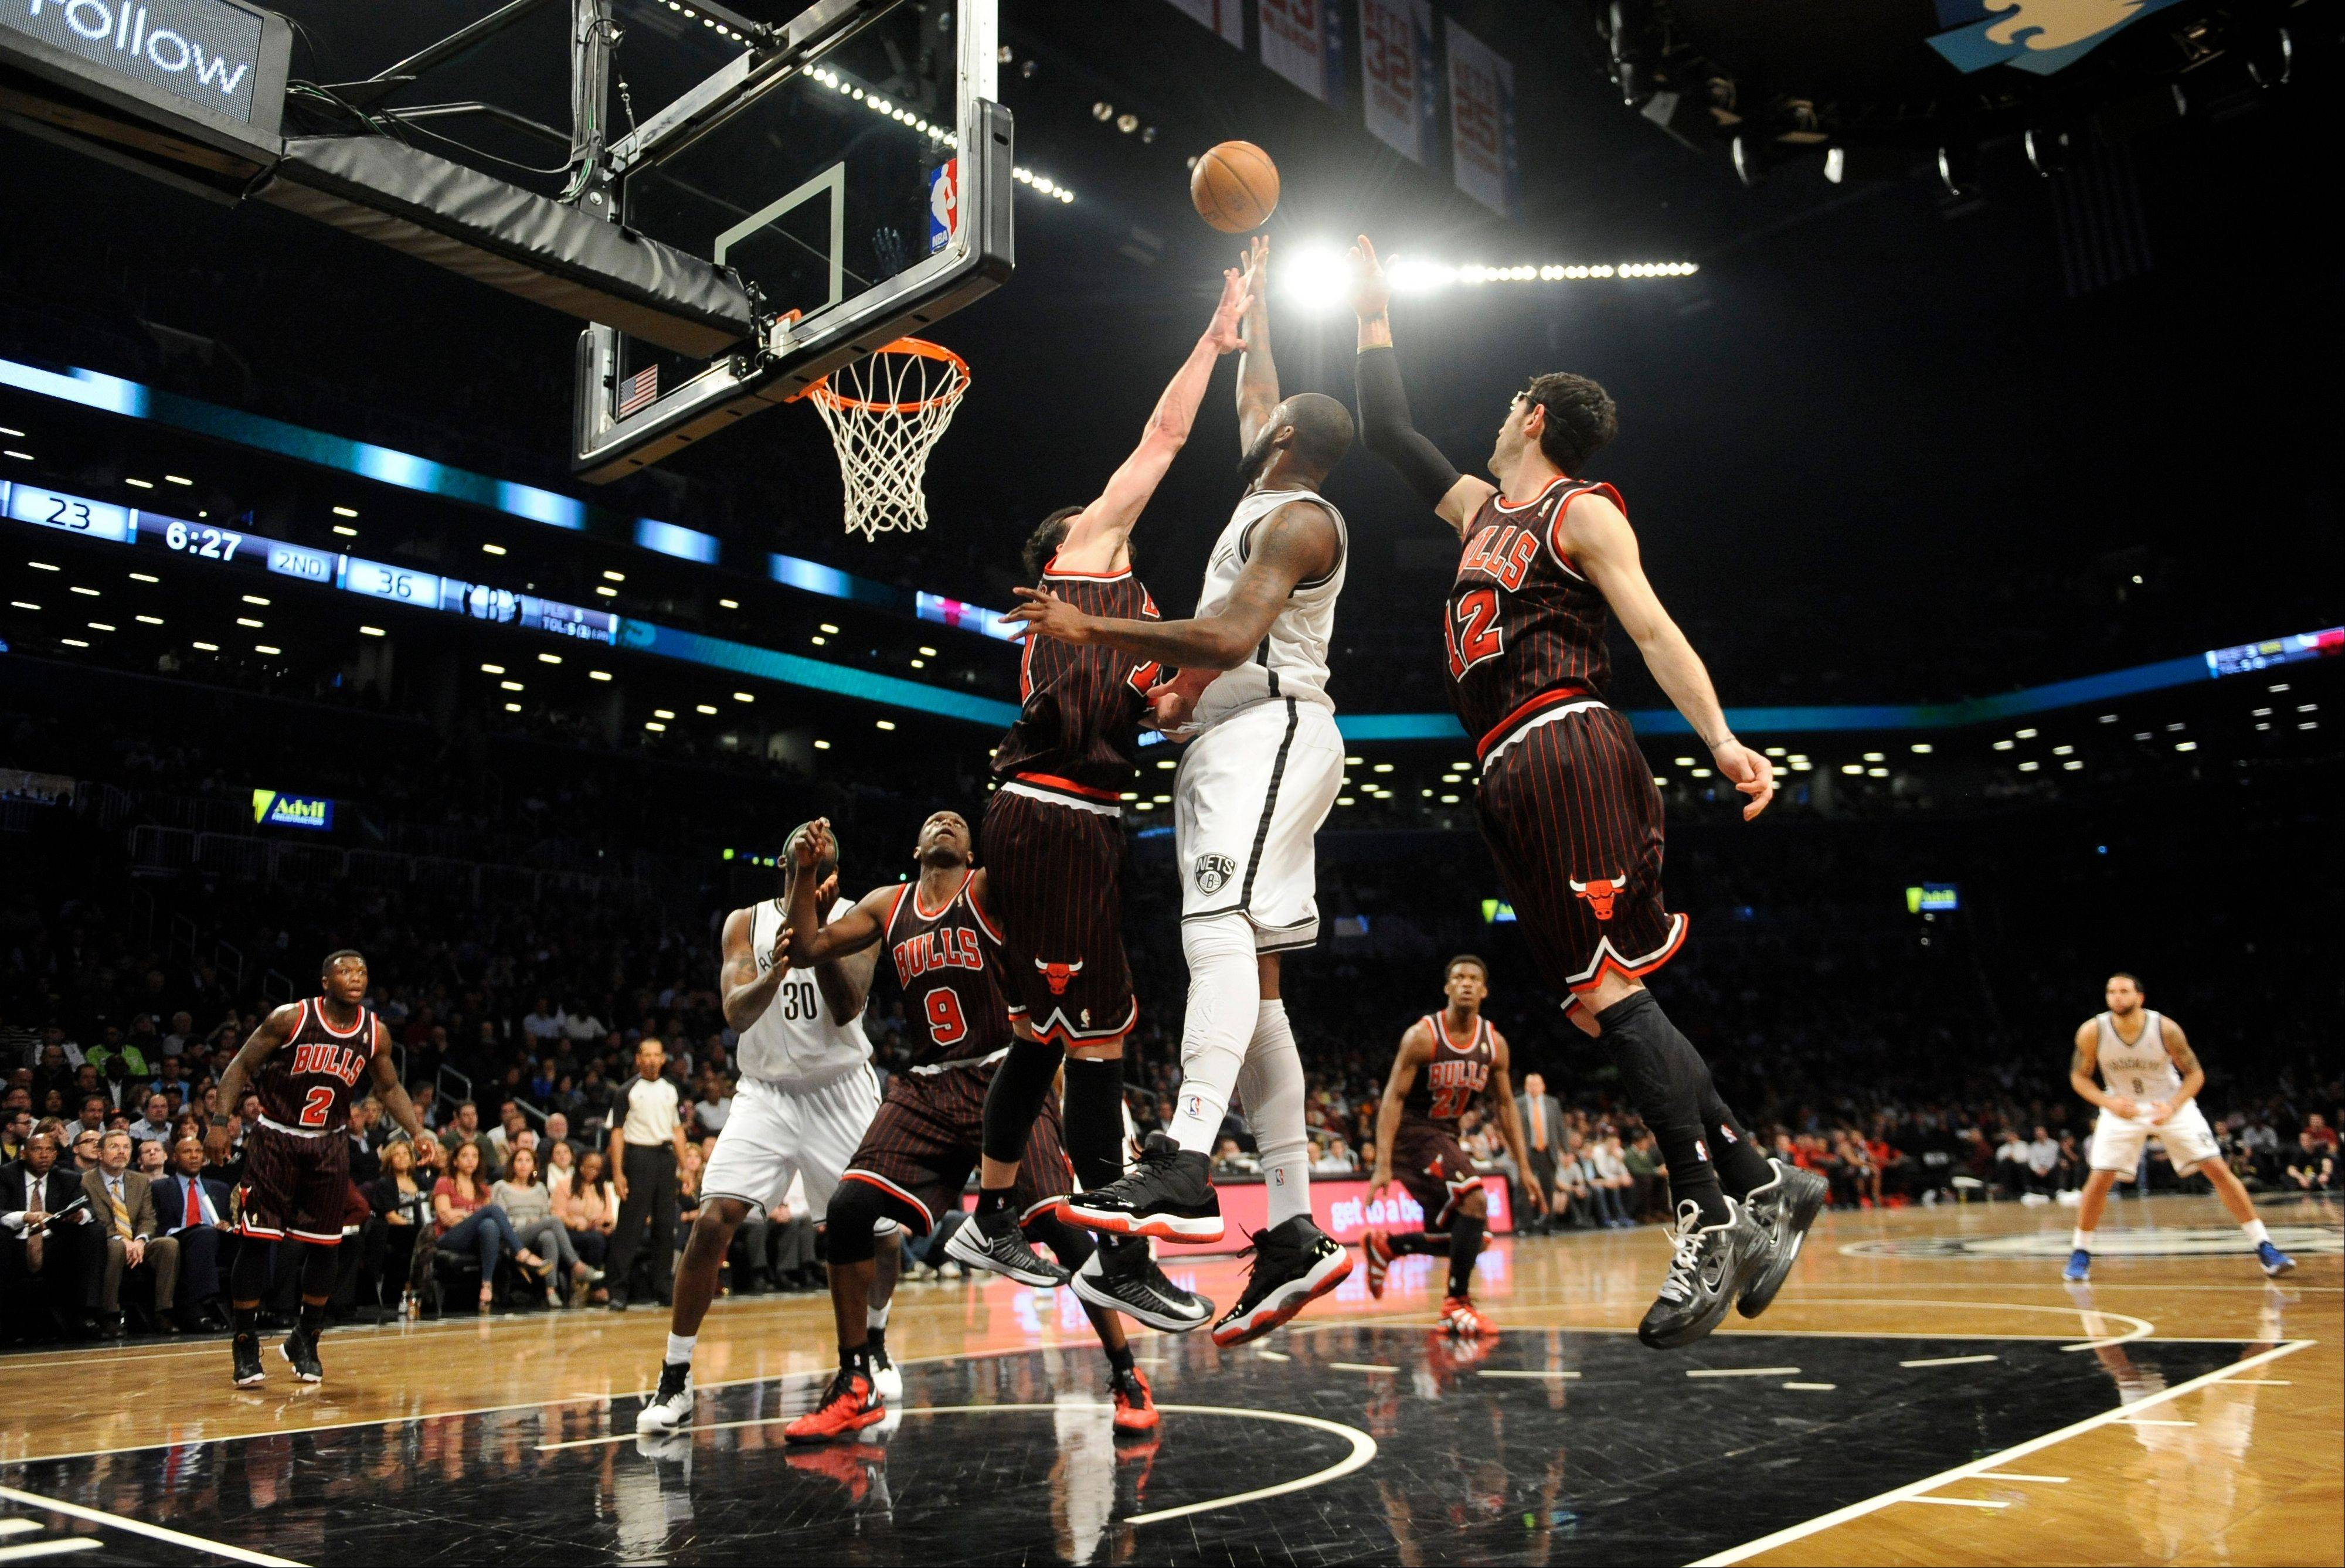 Brooklyn Nets' Andray Blatche (0) shoots between Chicago Bulls' Vladimir Radmanovic (77) and Kirk Hinrich (12) in the first half of an NBA basketball game on Thursday, April 4, 2013, at Barclays Center in New York.